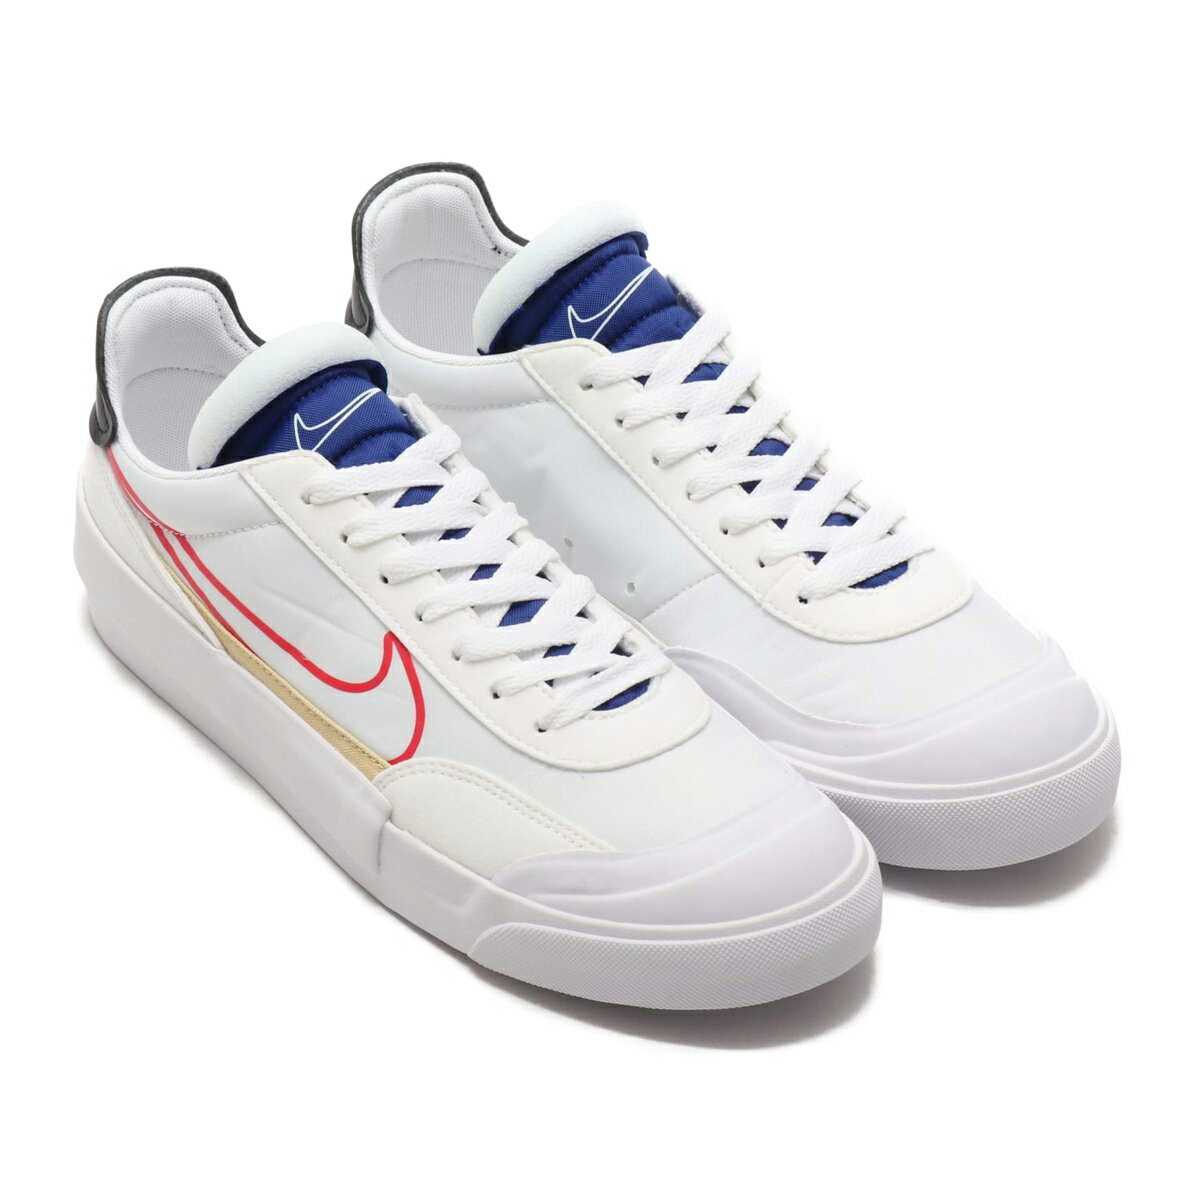 NIKE DROP-TYPE HBR(ナイキ ドロップ タイプ HBR)WHITE/UNIVERSITY RED-DEEP ROYAL BLUE【メンズ スニーカー】20SP-I at20-c画像